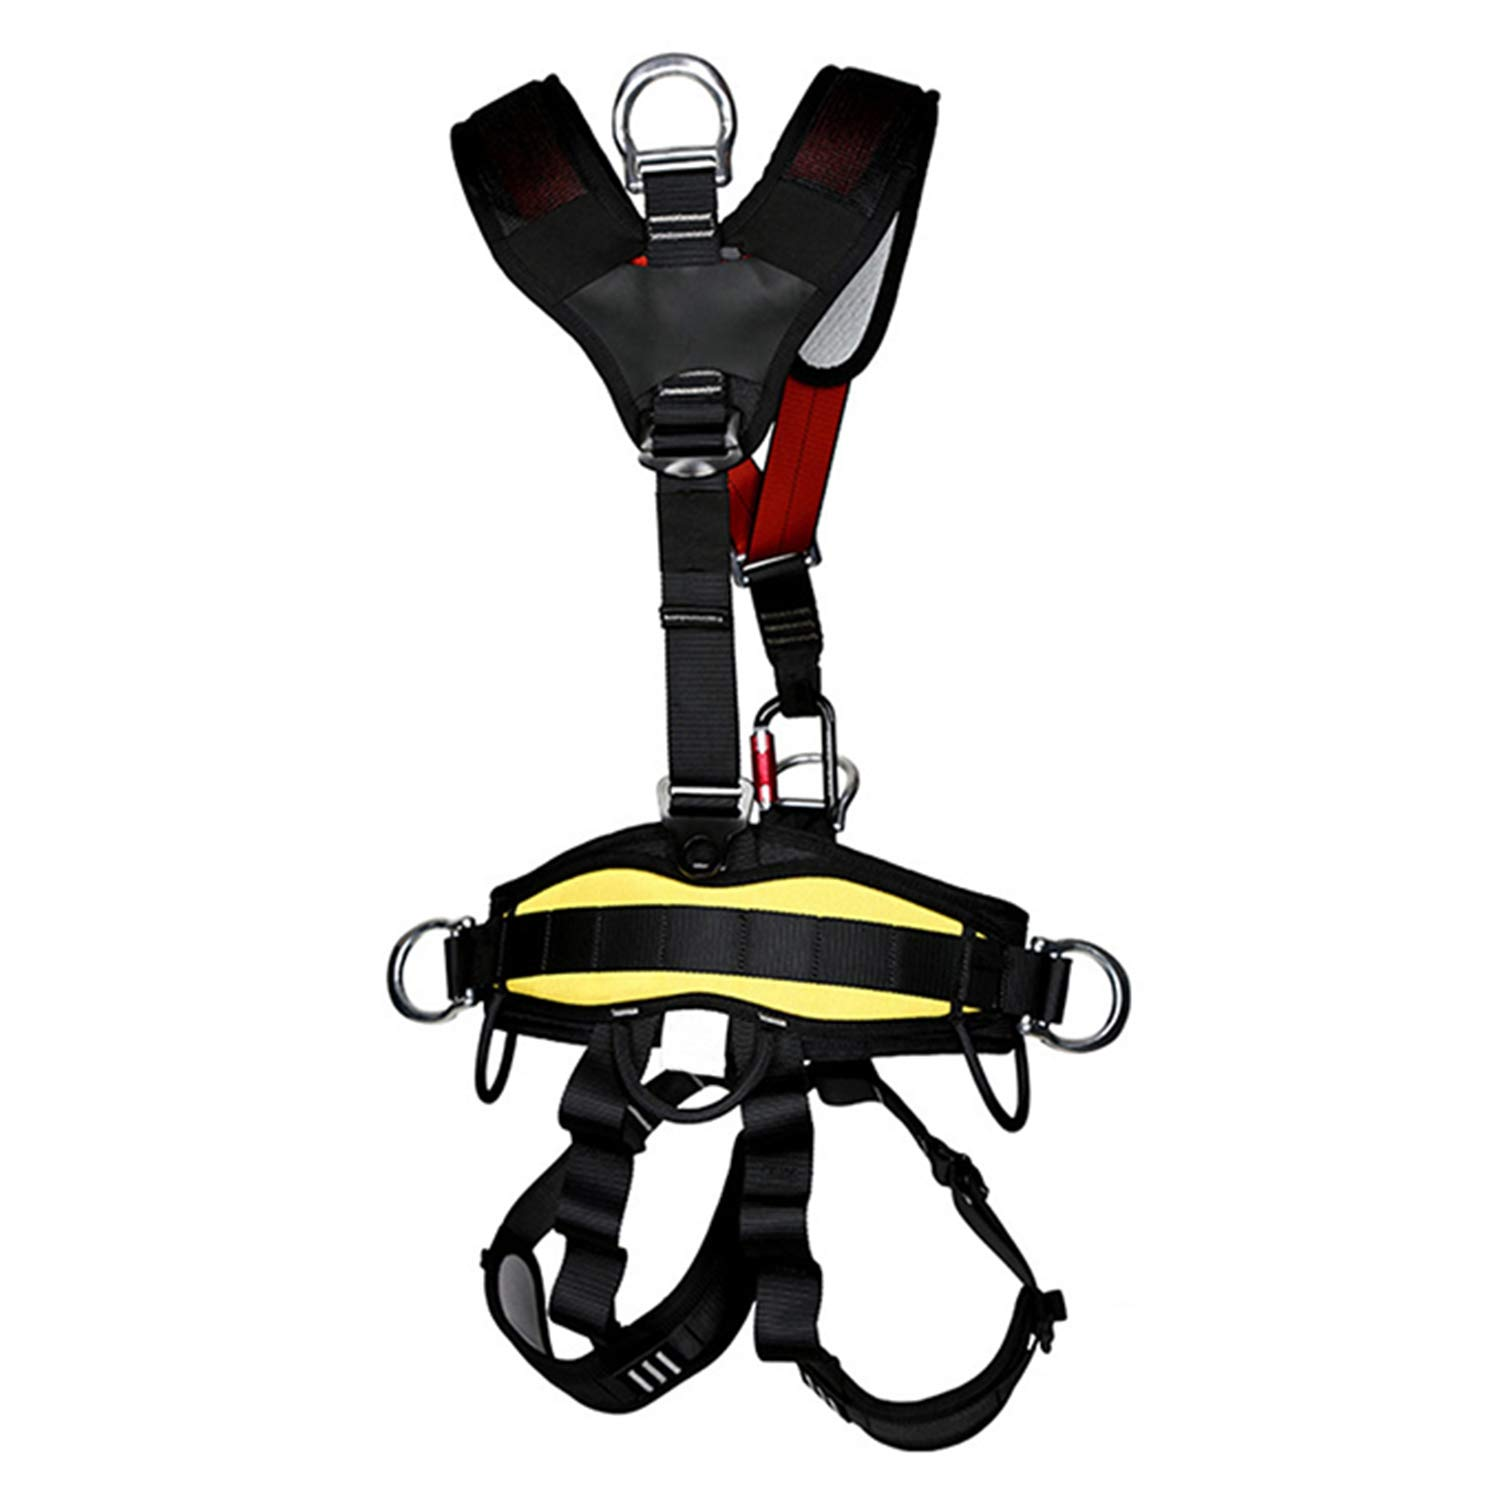 SODIAL Outdoor Climbing Rock Rappelling Mountaineering Accessories Body Wearing Seat Belt Sitting Waist Bust Protection by SODIAL (Image #3)